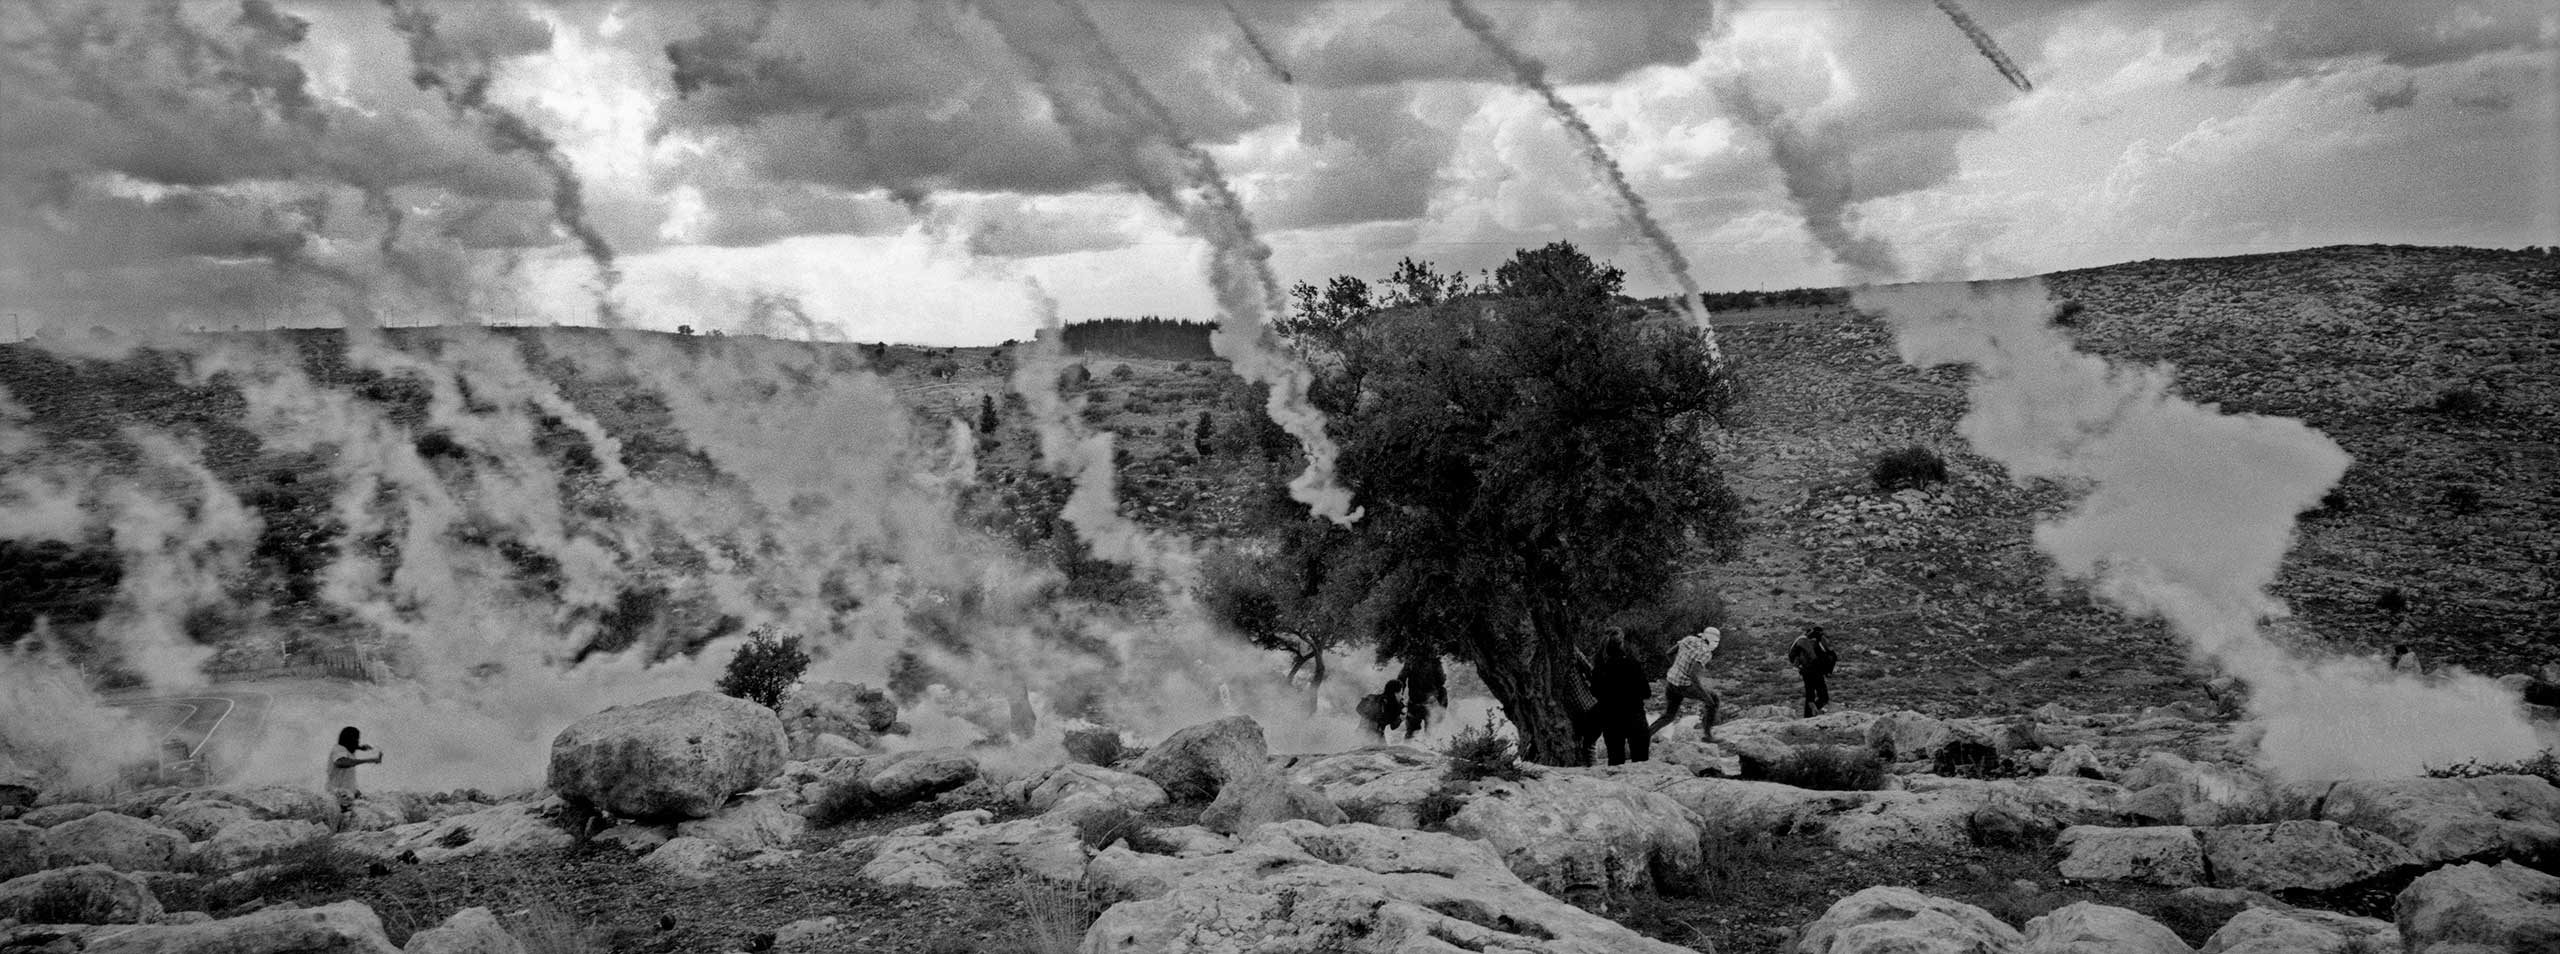 Protestor running from tear gas during riots in the Palestinian village of Nilin in the West Bank. From the                                series: Barricades,                               2010